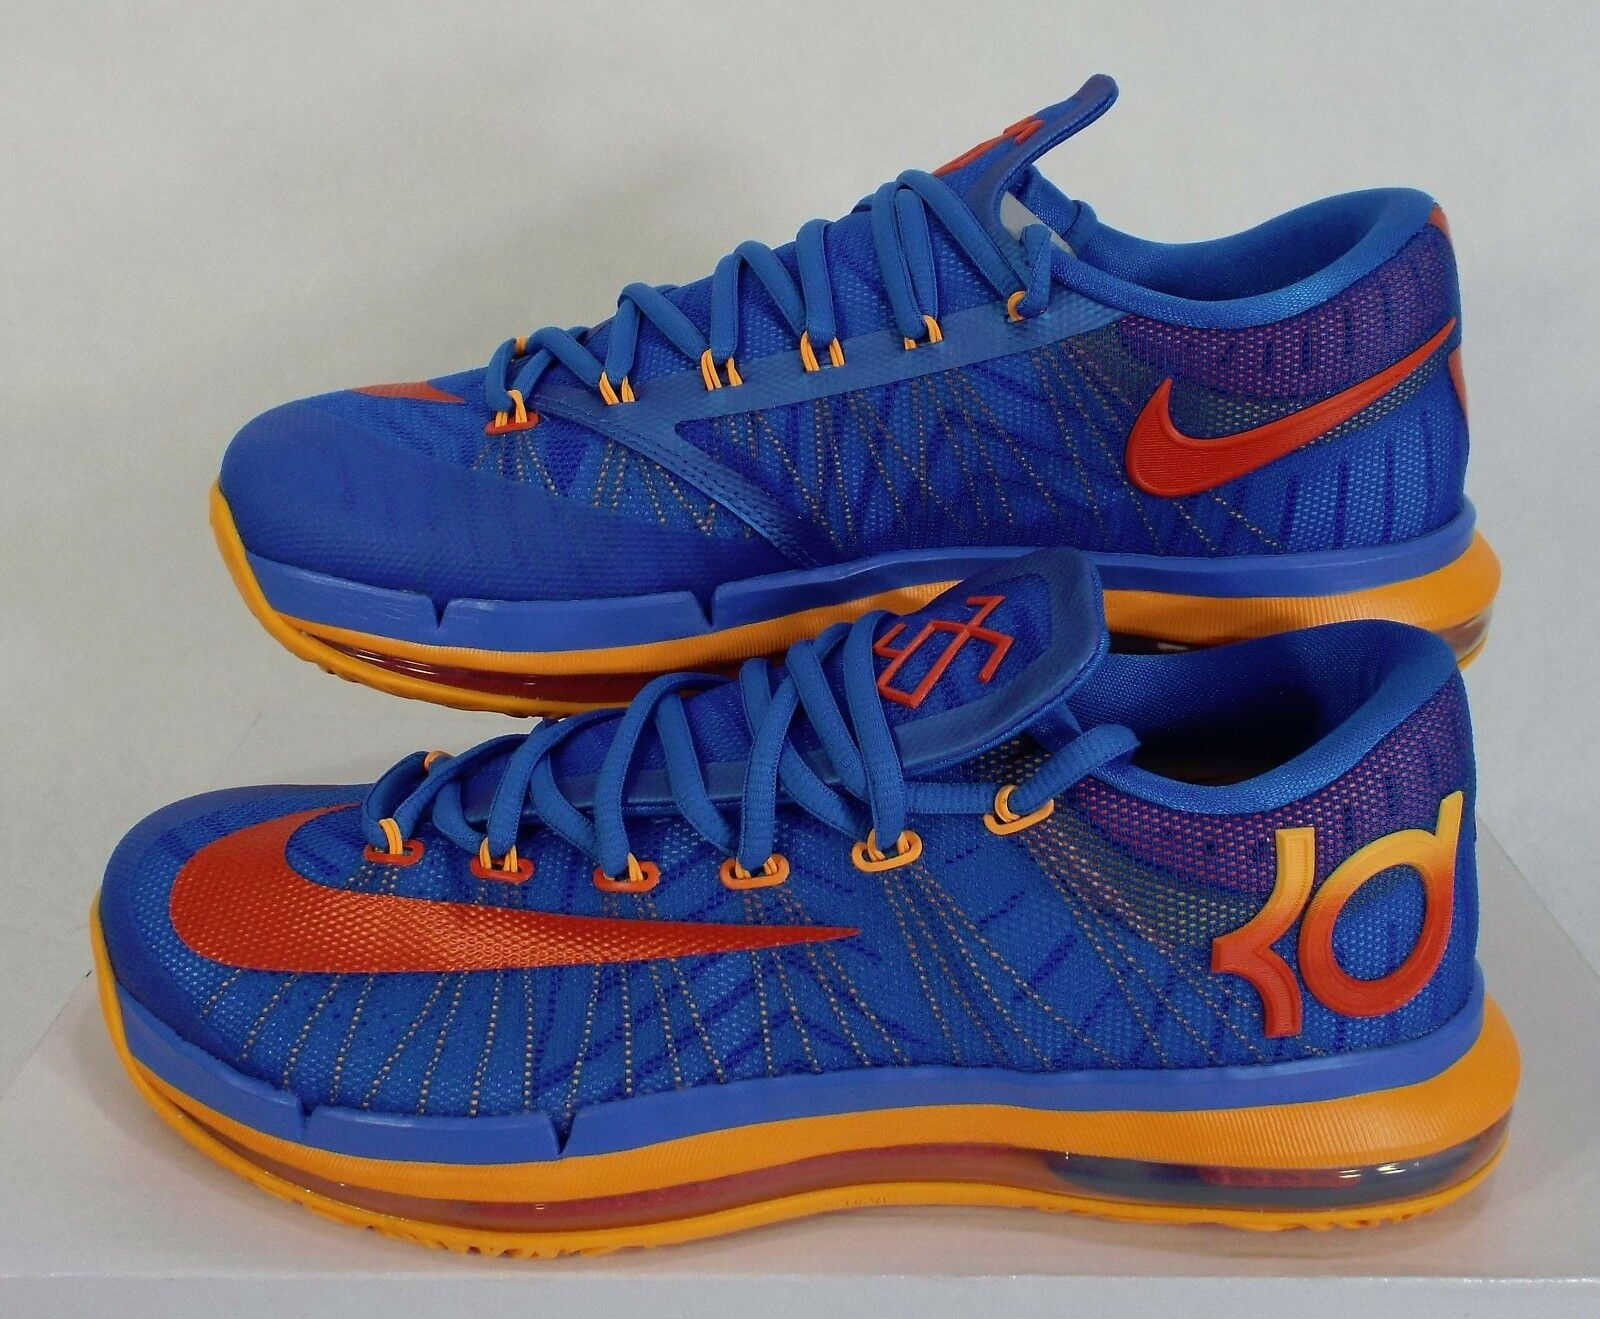 New Hommes 12.5 NIKE KD VI Elite Bleu Orange Basketball Chaussures  200 642838-400